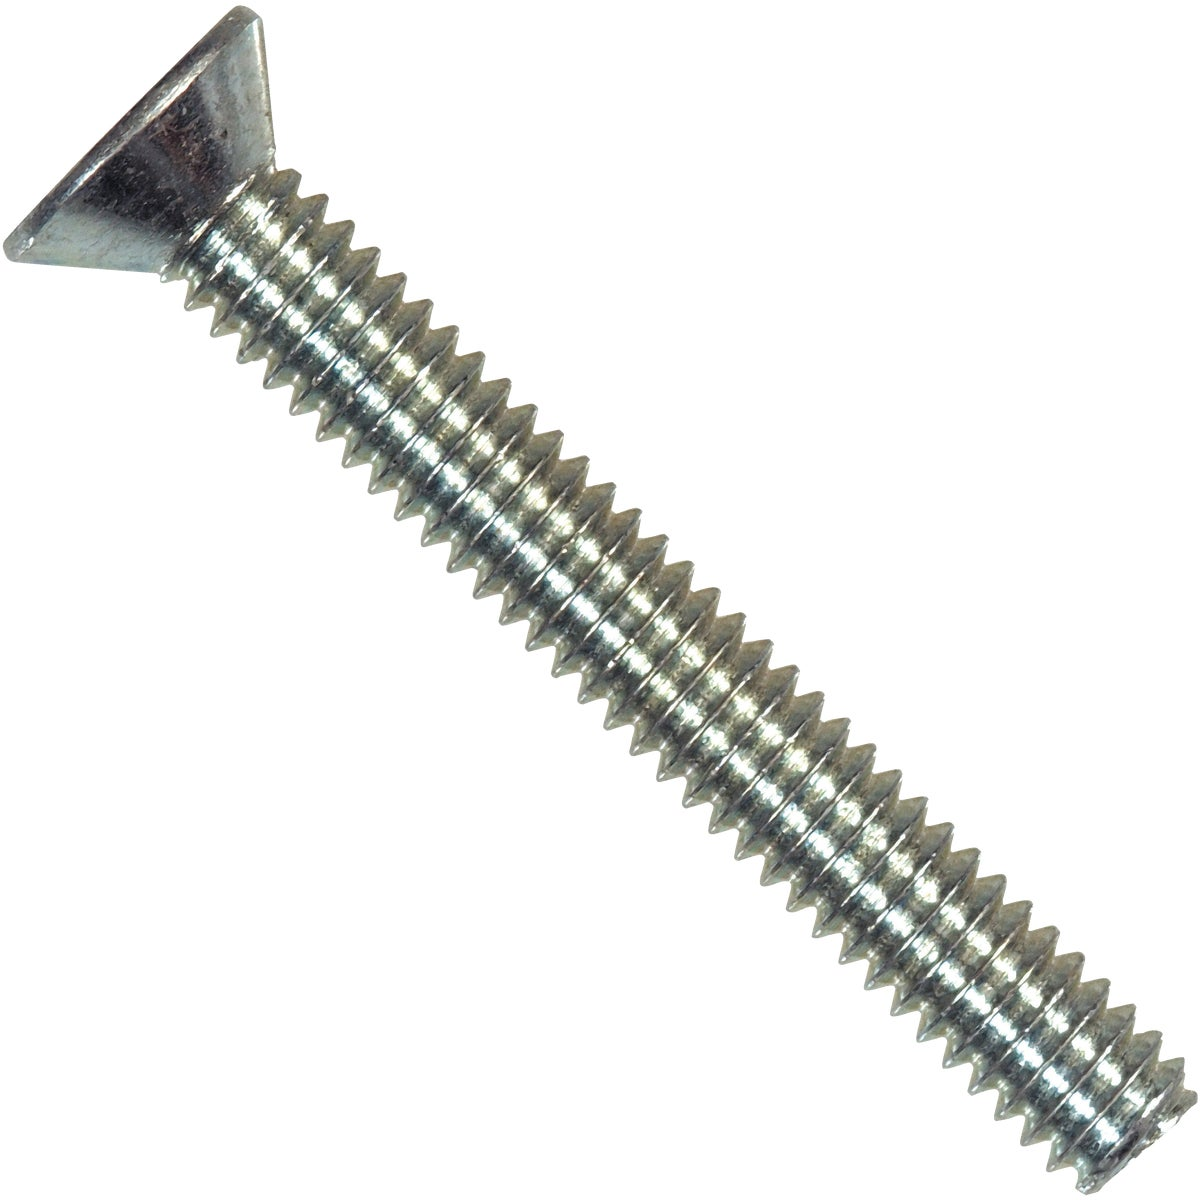 10-24X1 PH FH MACH SCREW